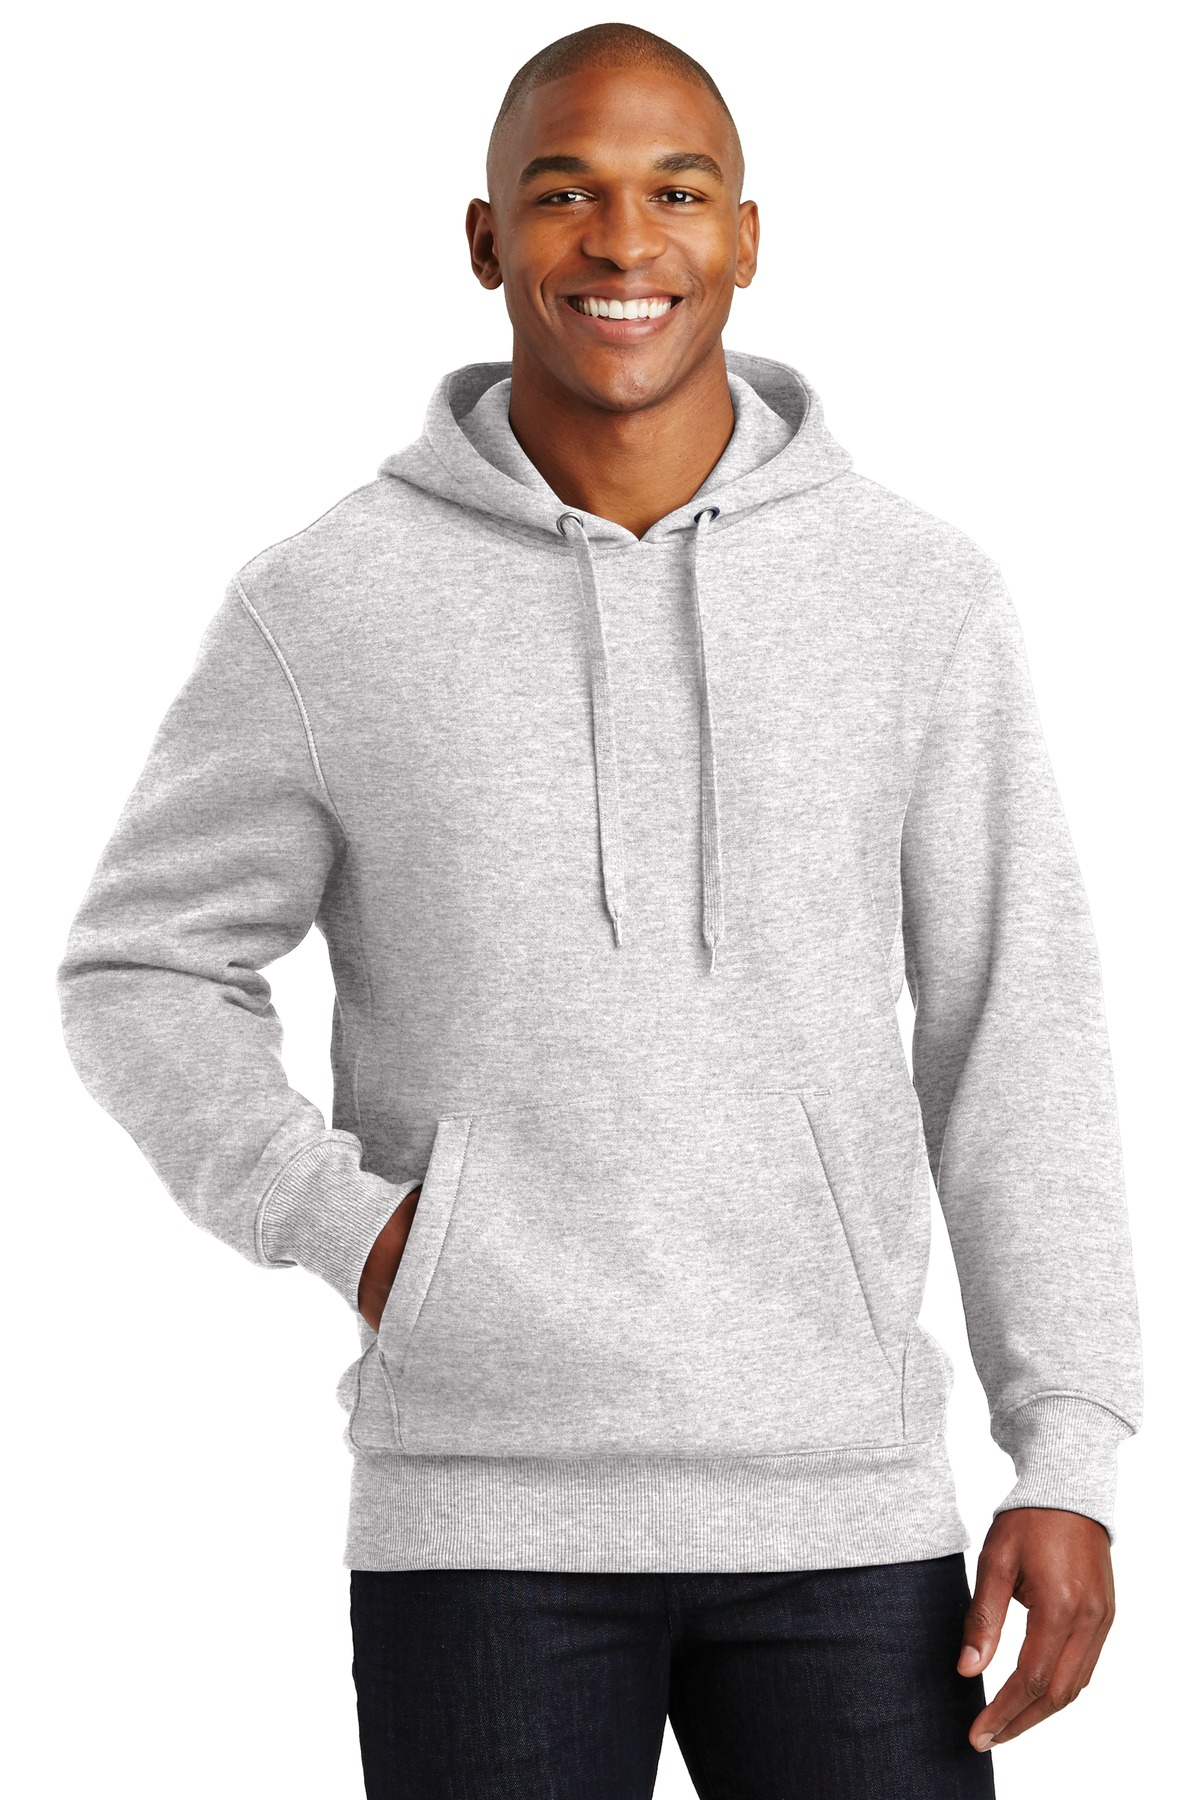 Sport-Tek ®  Super Heavyweight Pullover Hooded Sweatshirt.  F281 - Athletic Heather